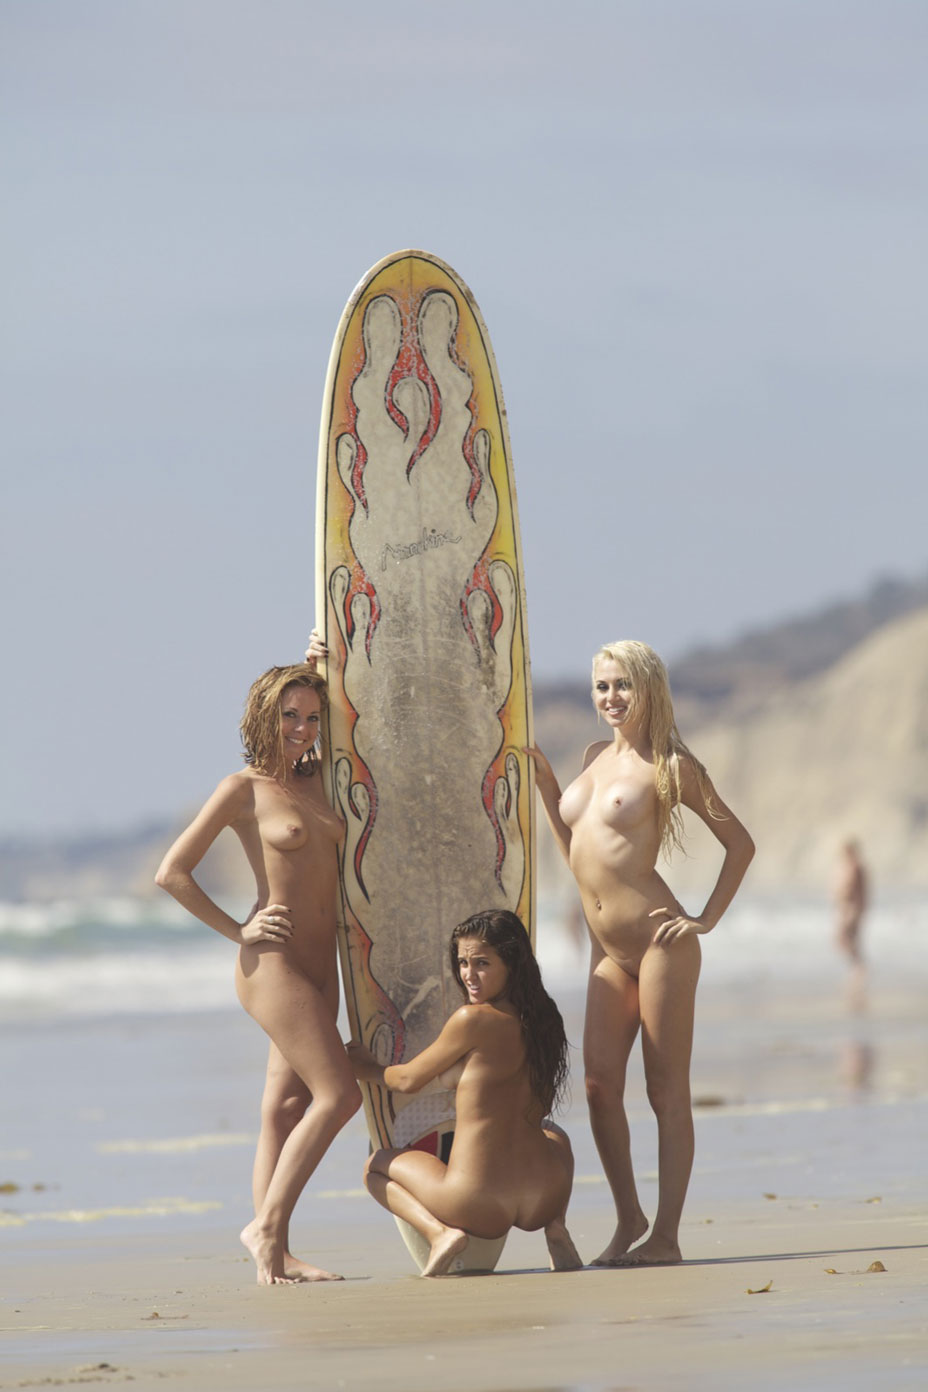 Hot babes posing nude with a huge surfing board